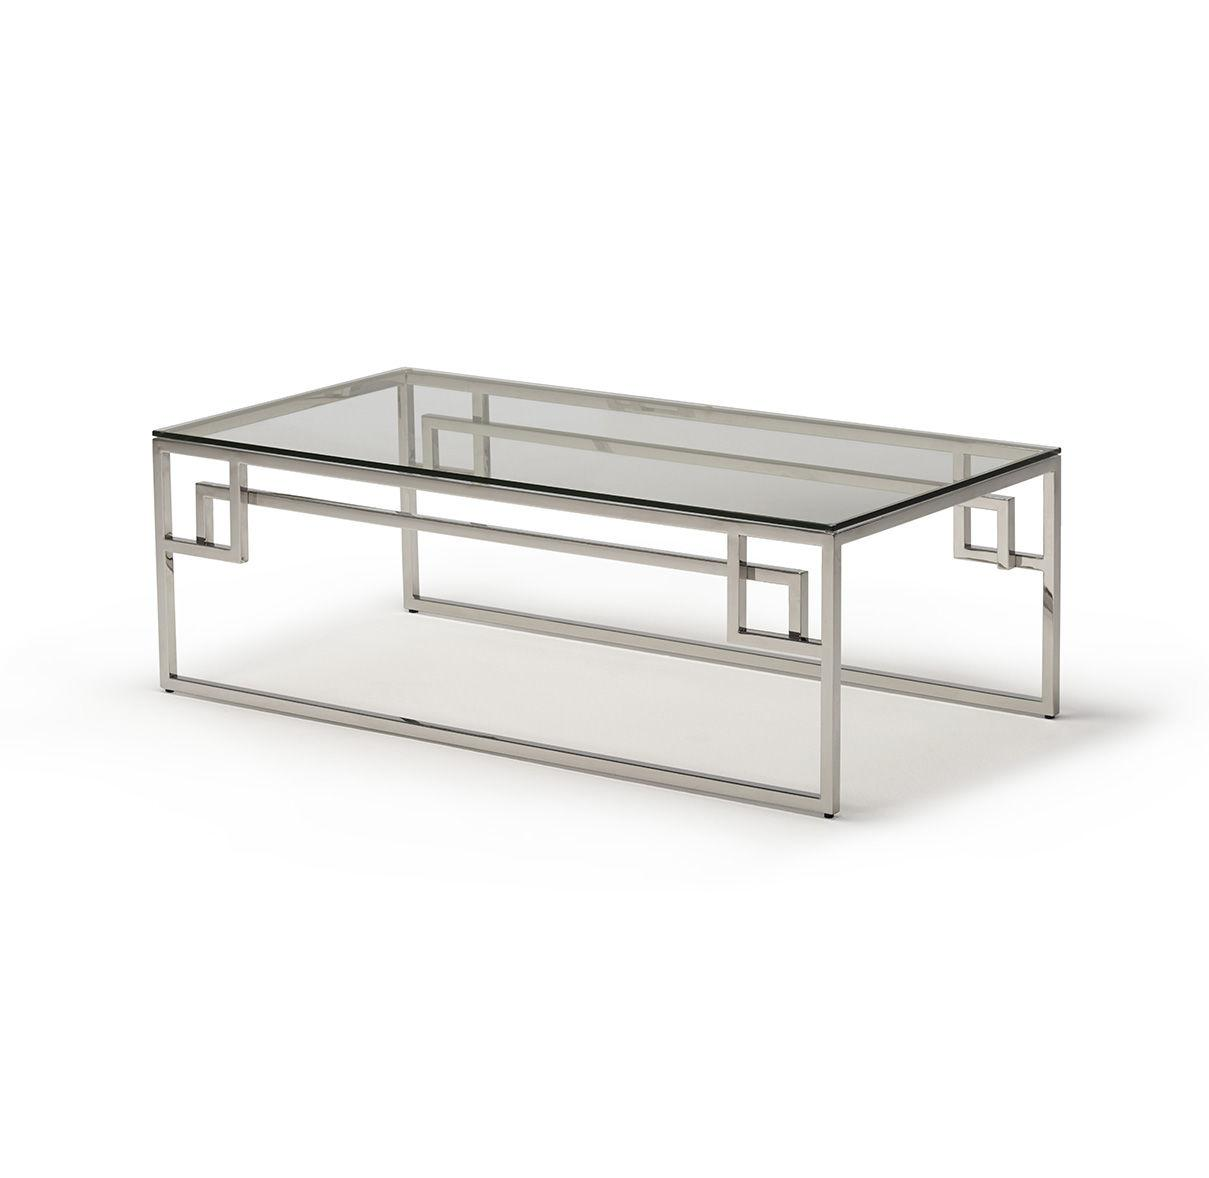 Cen Polished Stainless Steel Coffee Table with Clear Glass - ID 9066